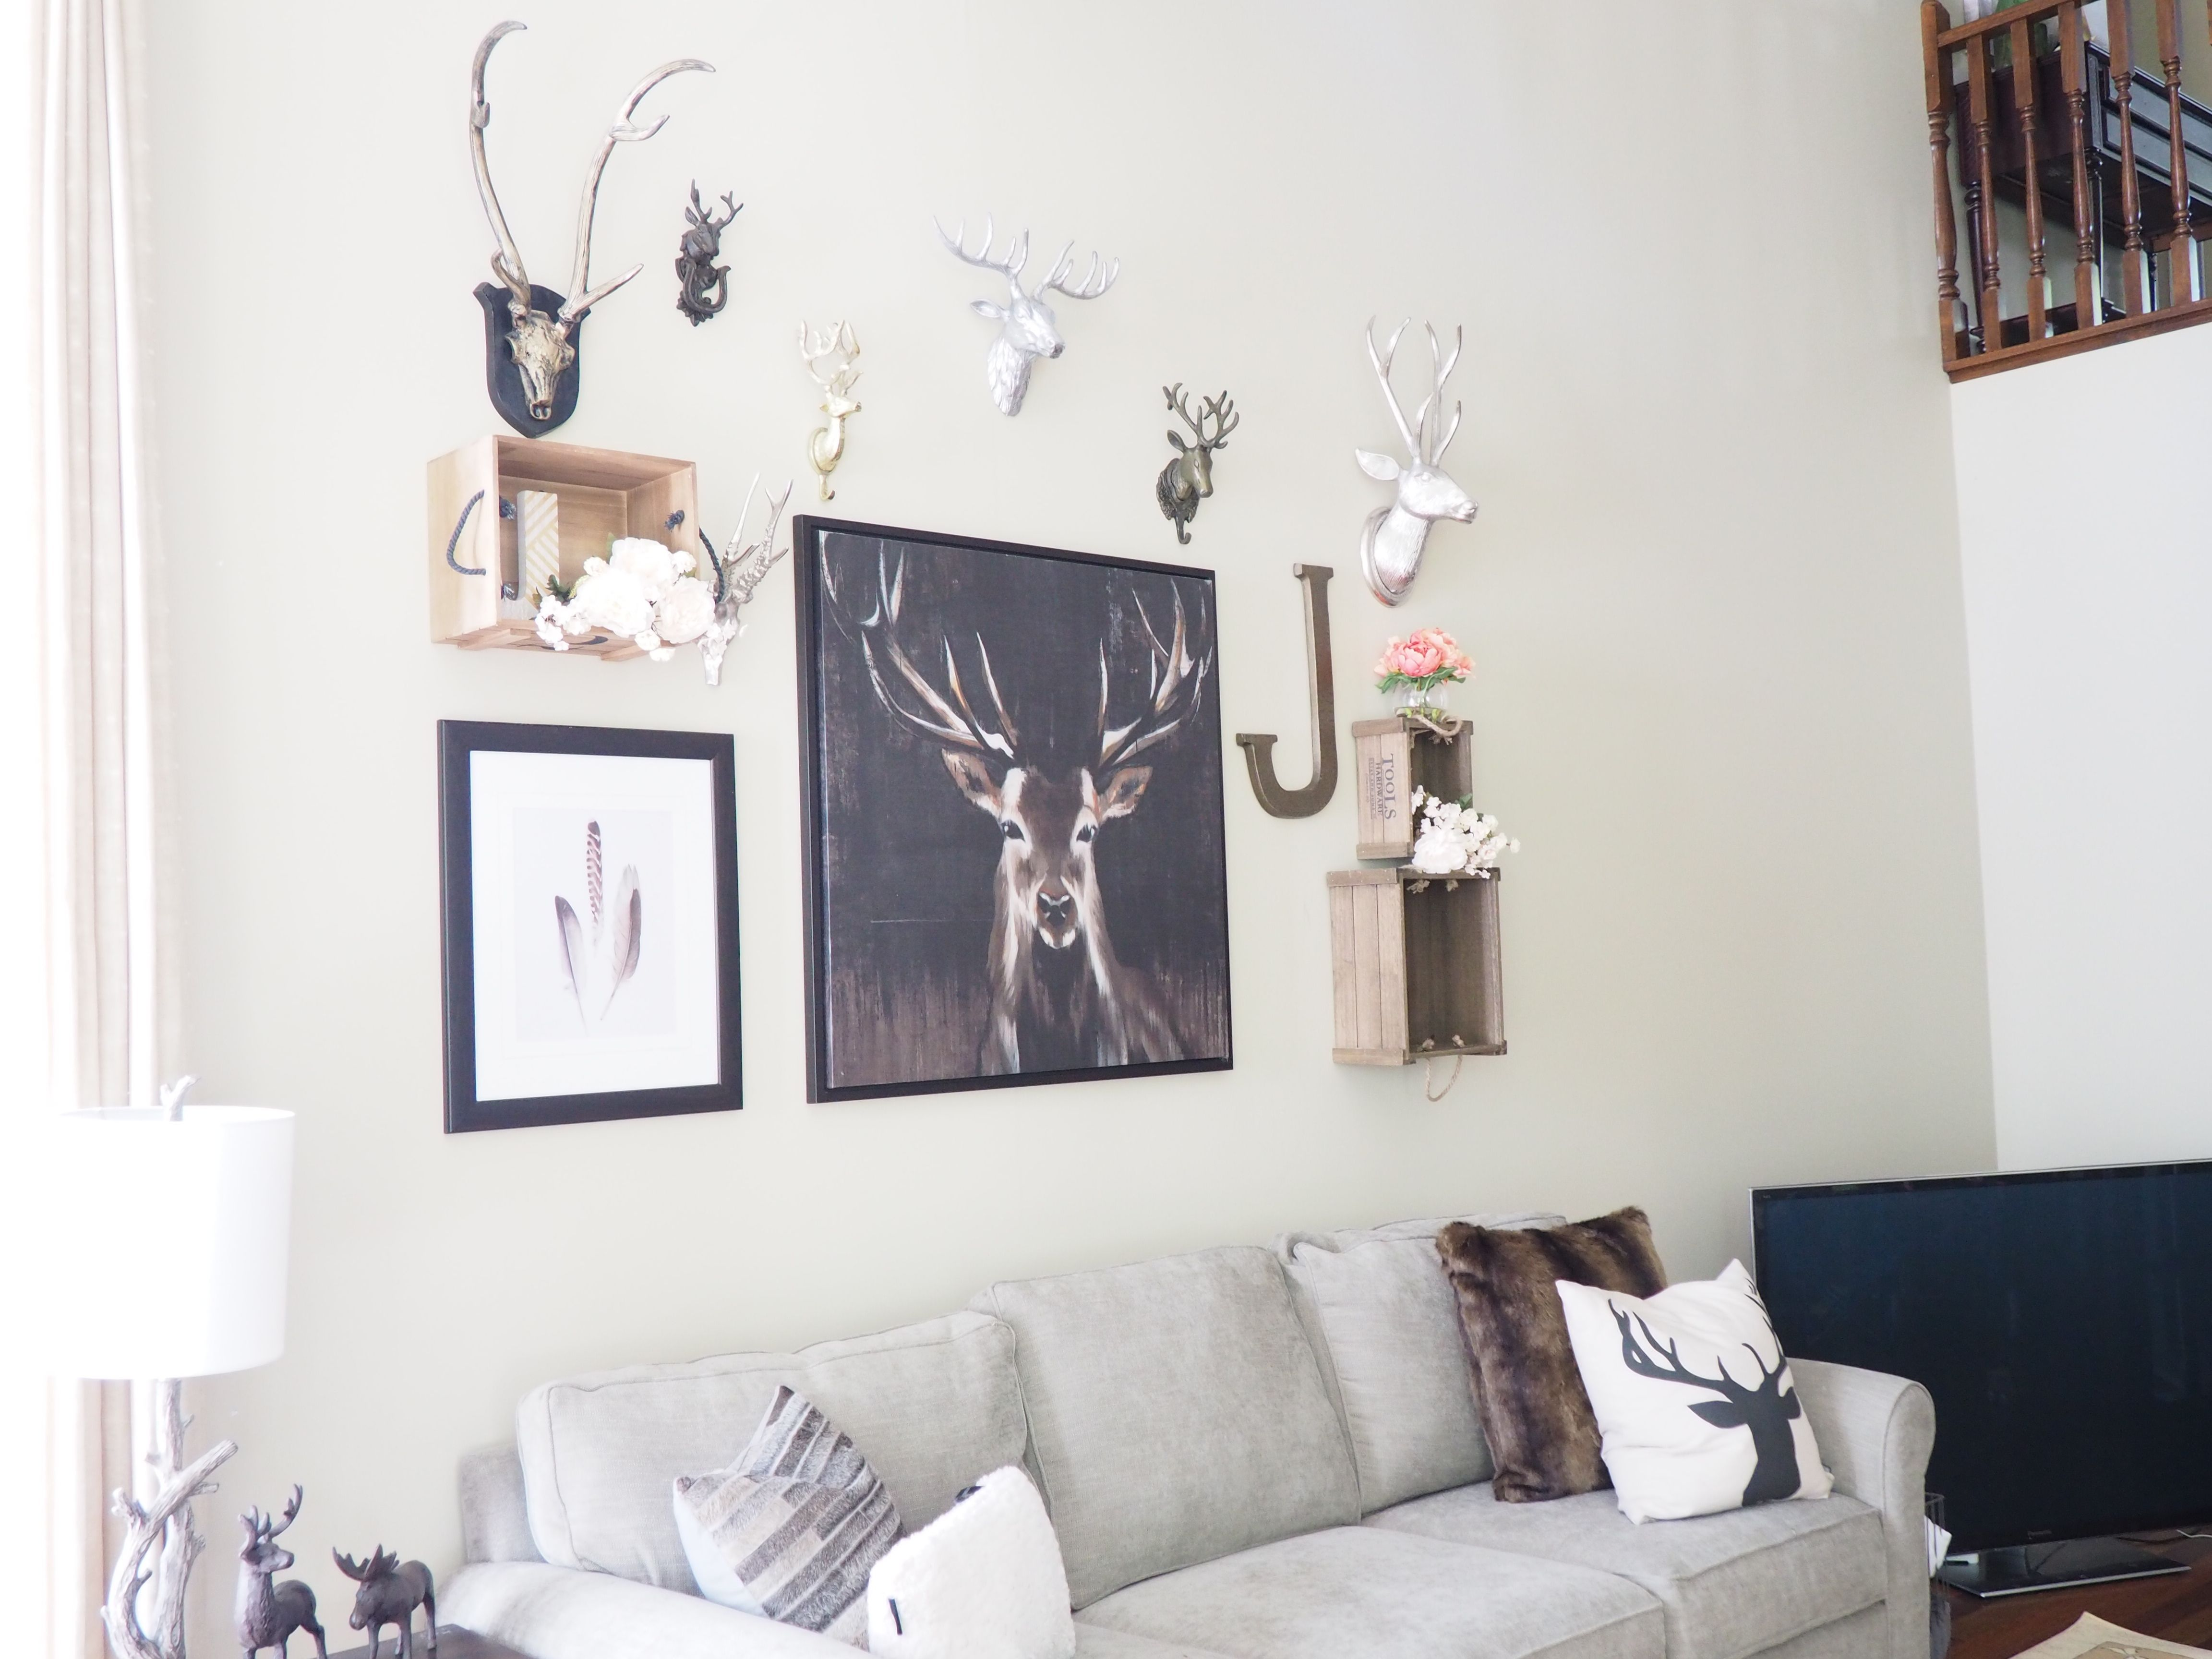 Pin By Cindy J On House Home Decor Decor Gallery Wall